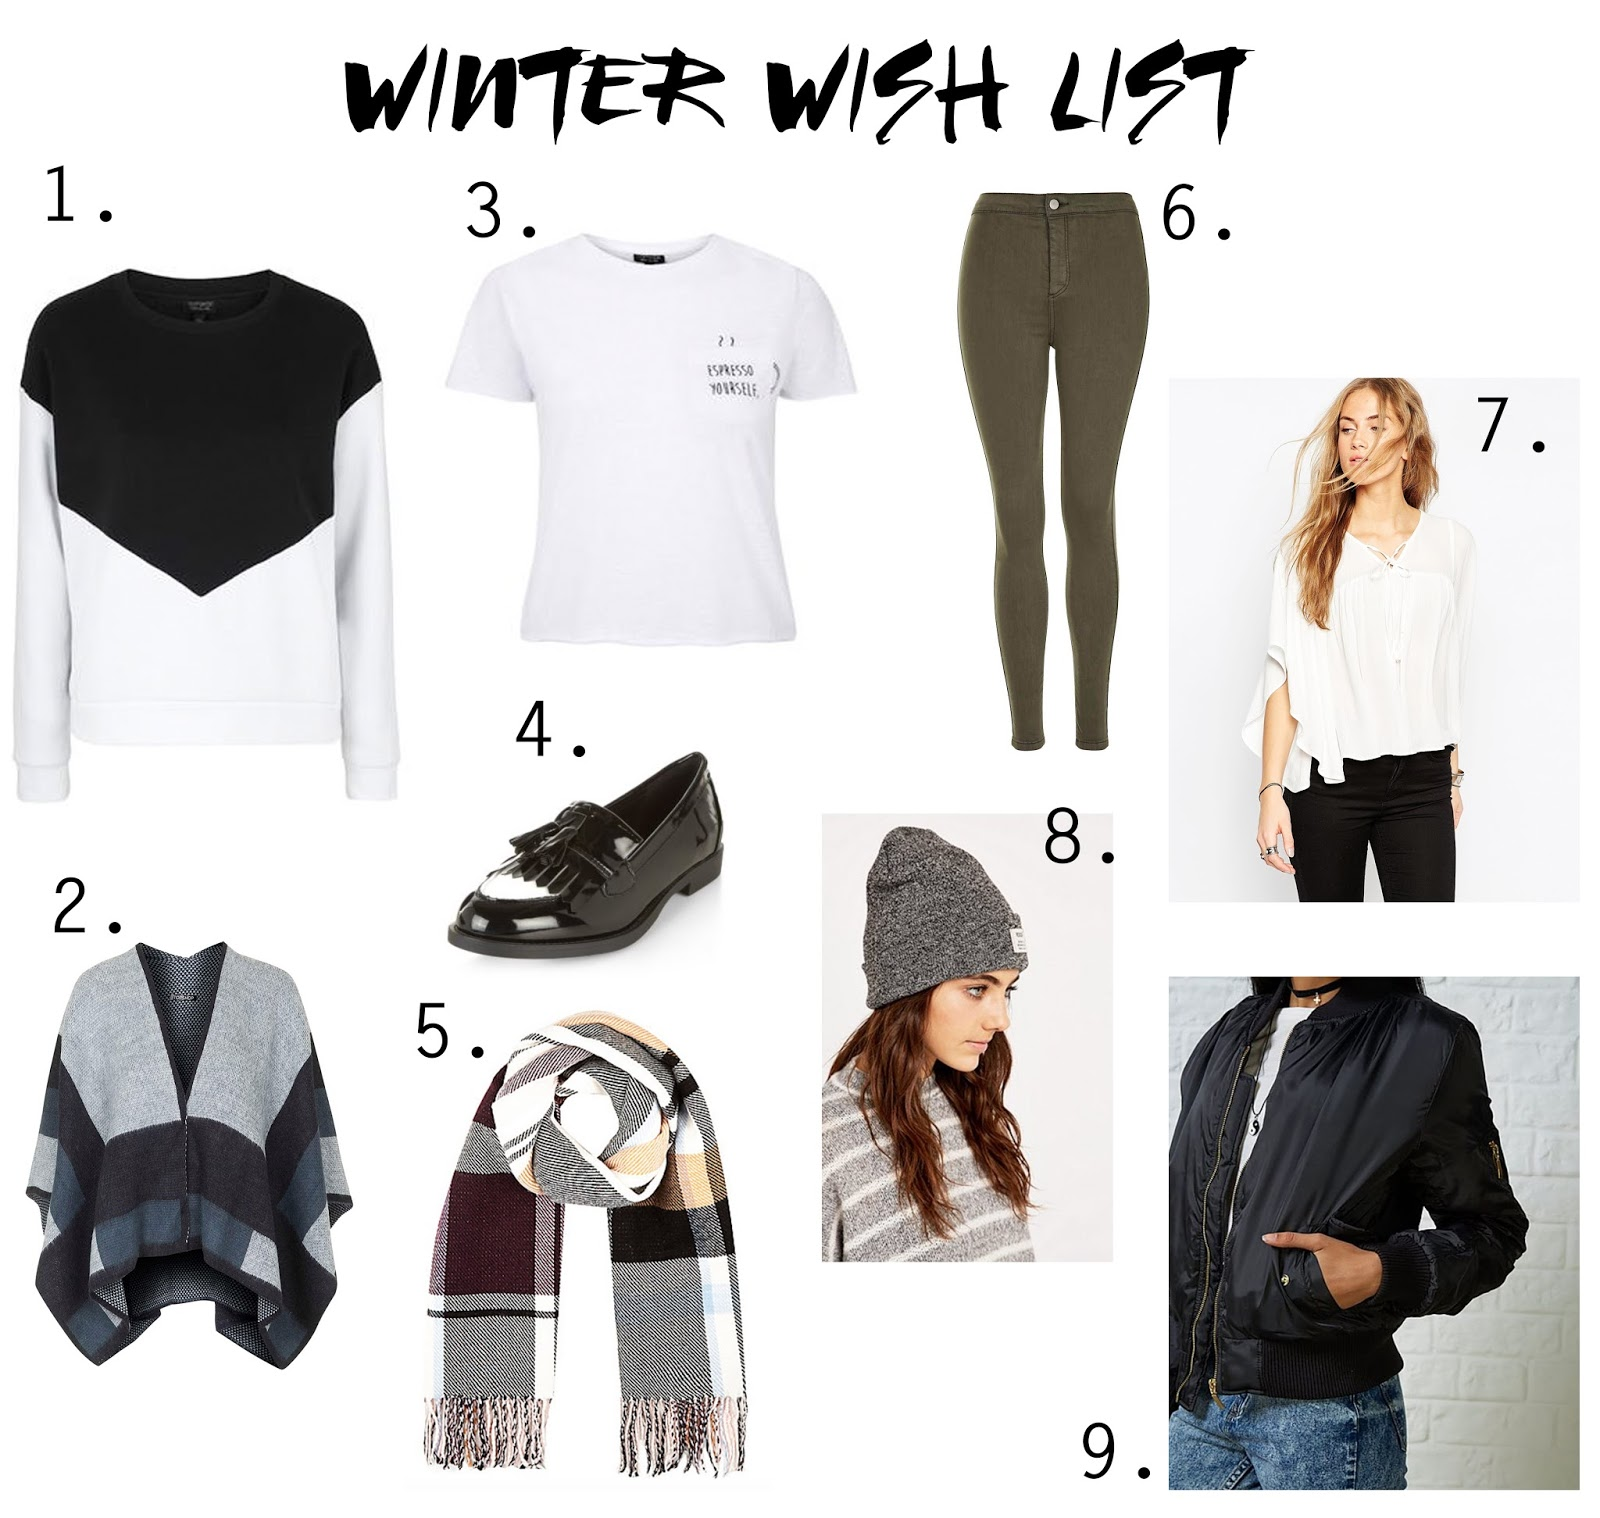 Winter clothing wish list 2015